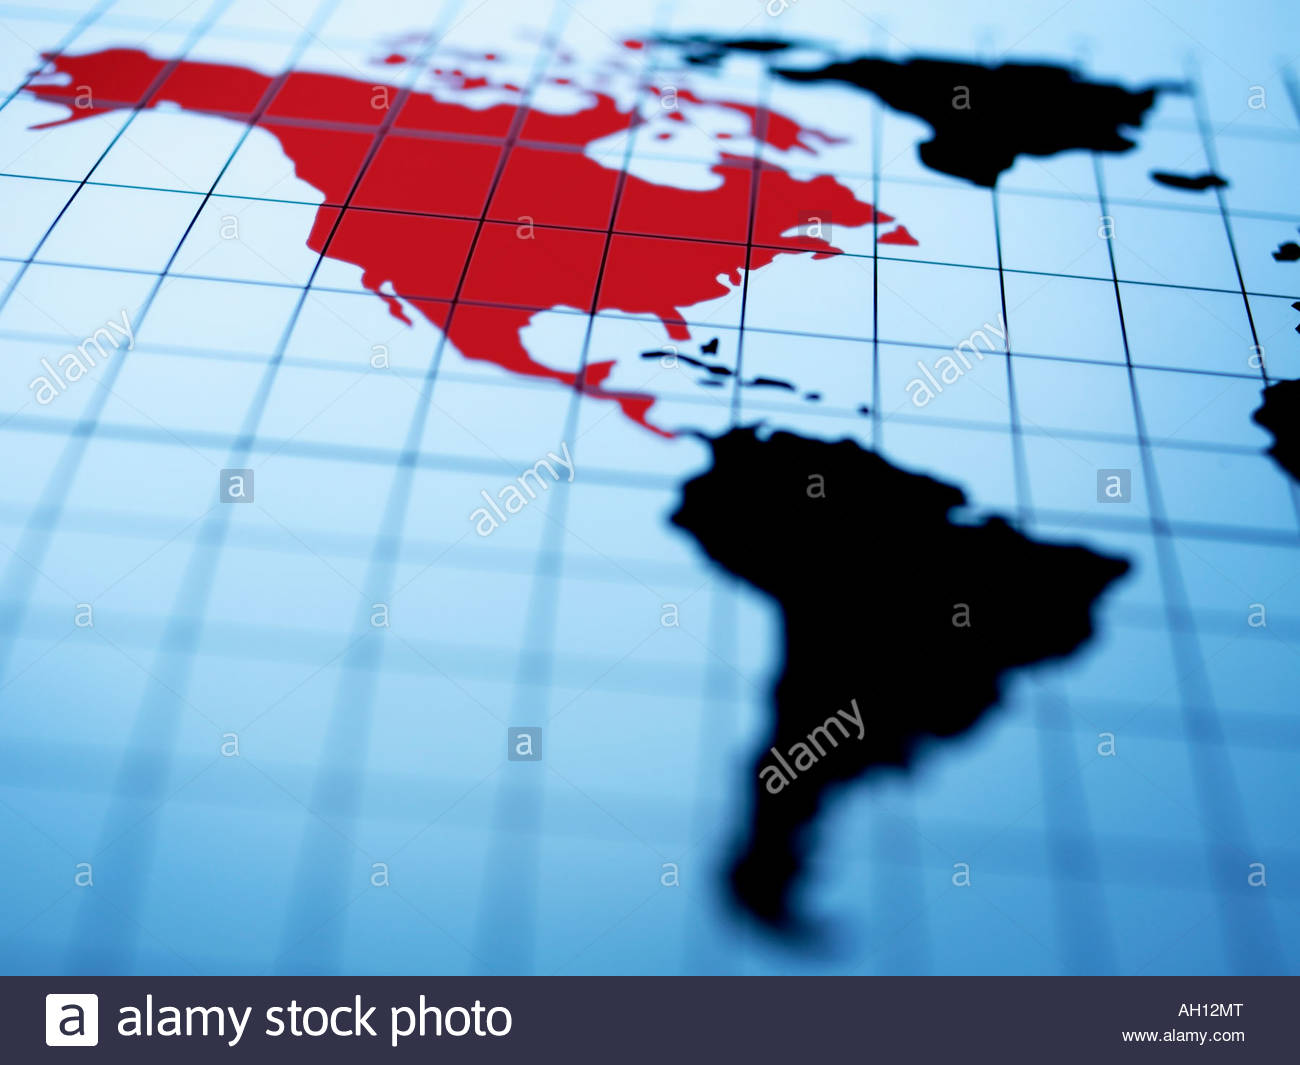 Map western hemisphere stock photos map western hemisphere stock map of western hemisphere highlighting north america stock image gumiabroncs